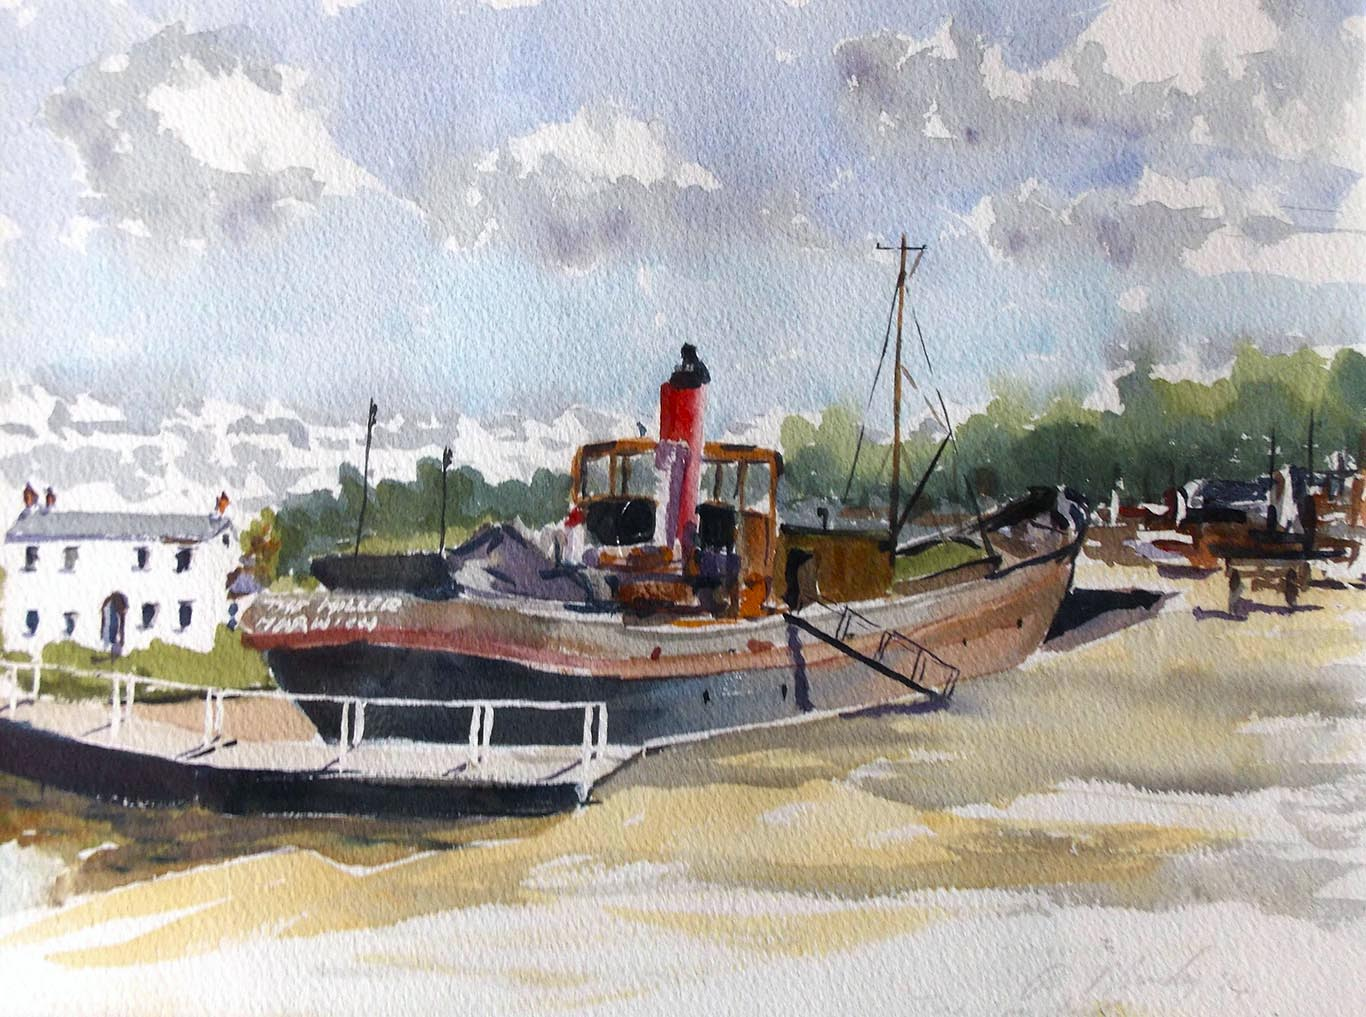 online watercolour classes, for beginners, zoom, uk, beginners, watercolours, art classes